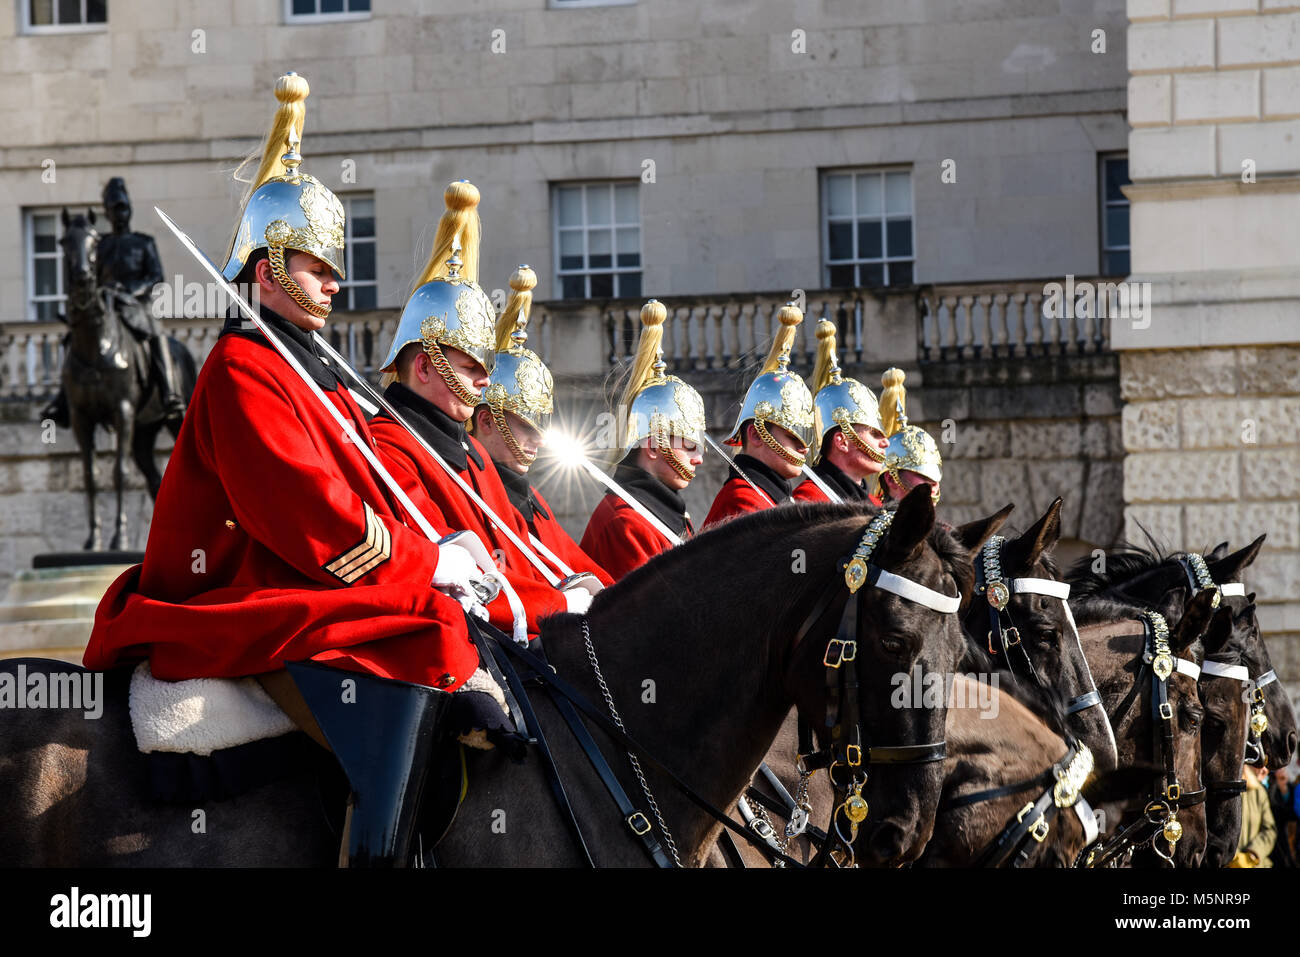 Changing of the guard, Horse Guards Parade, London. Life Guards Household Cavalry mounted soldiers in ceremonial - Stock Image